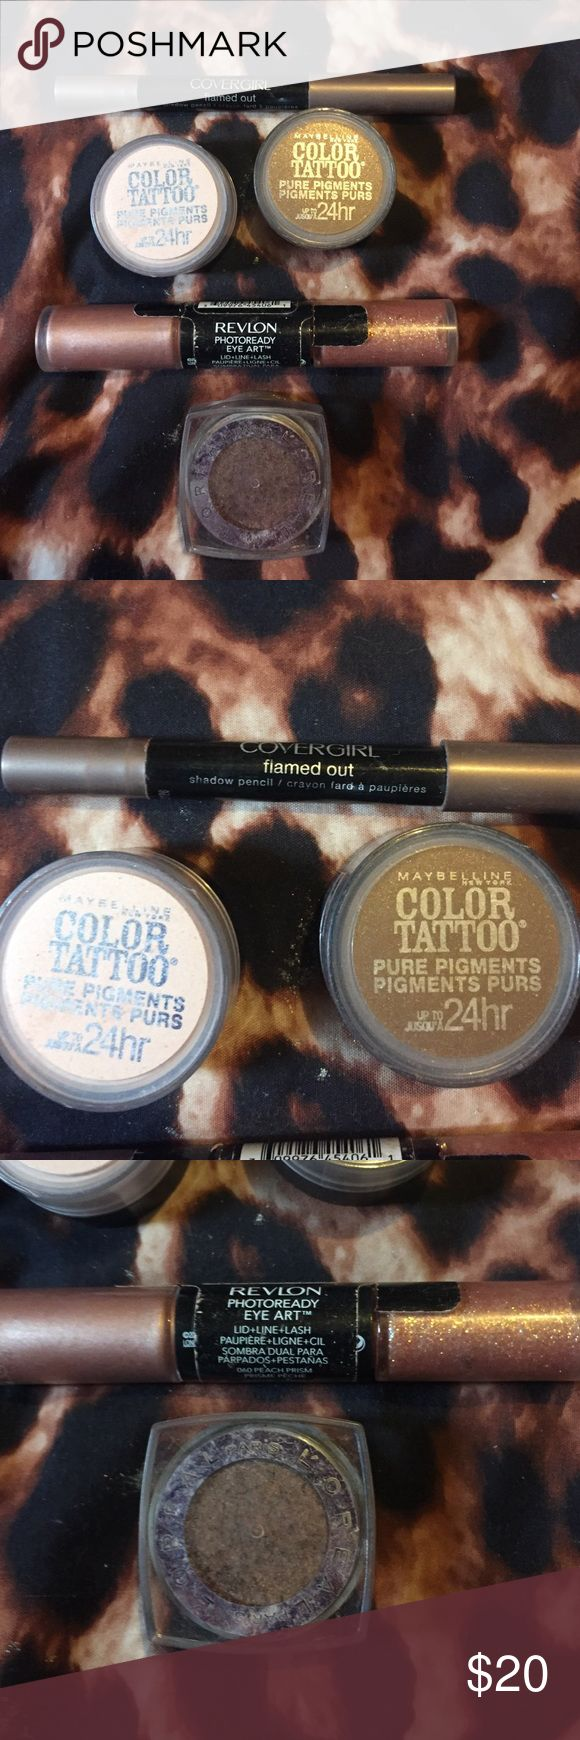 Eyeshadow bundle Eyeshadow bundle includes 2 Maybelline color tattoo pure pigment eyeshadow last up to 24hrs colors BARELY BRAZEN & DOWNTOWN BROWN , Cover girl flamed out eyeshadow pencil, revlon Photo ready eye art  lid, line, and lash, L'Oreal eyeshadow palette color iced latte Makeup Eyeshadow